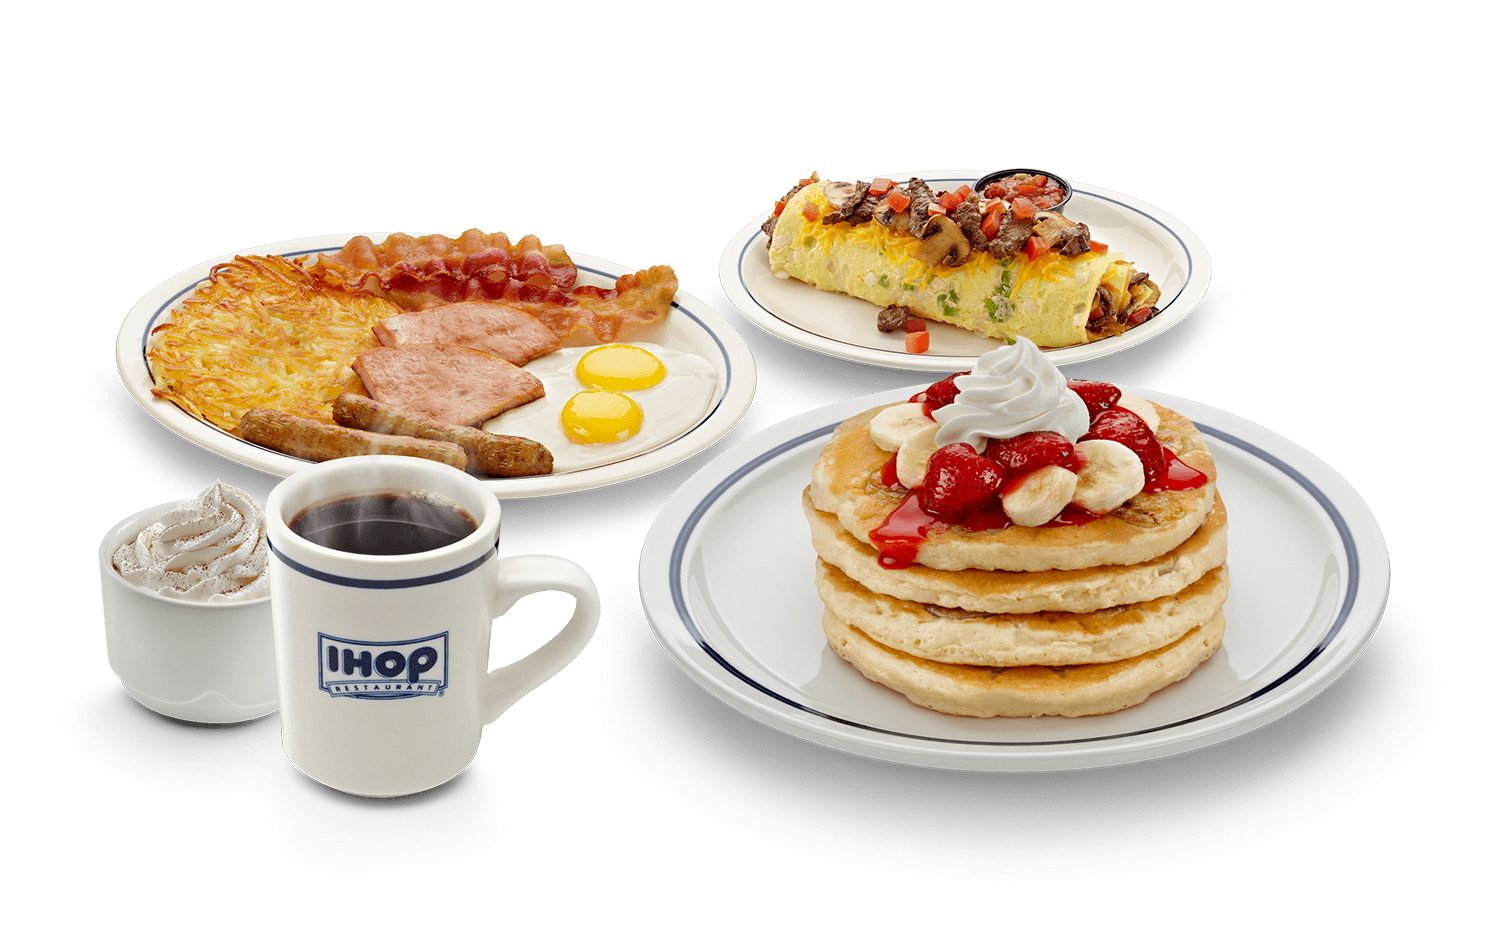 IHOP® is the home of all things breakfast and everything delicious. Pancakes, crepes, waffles, eggs and more – order online all right here.